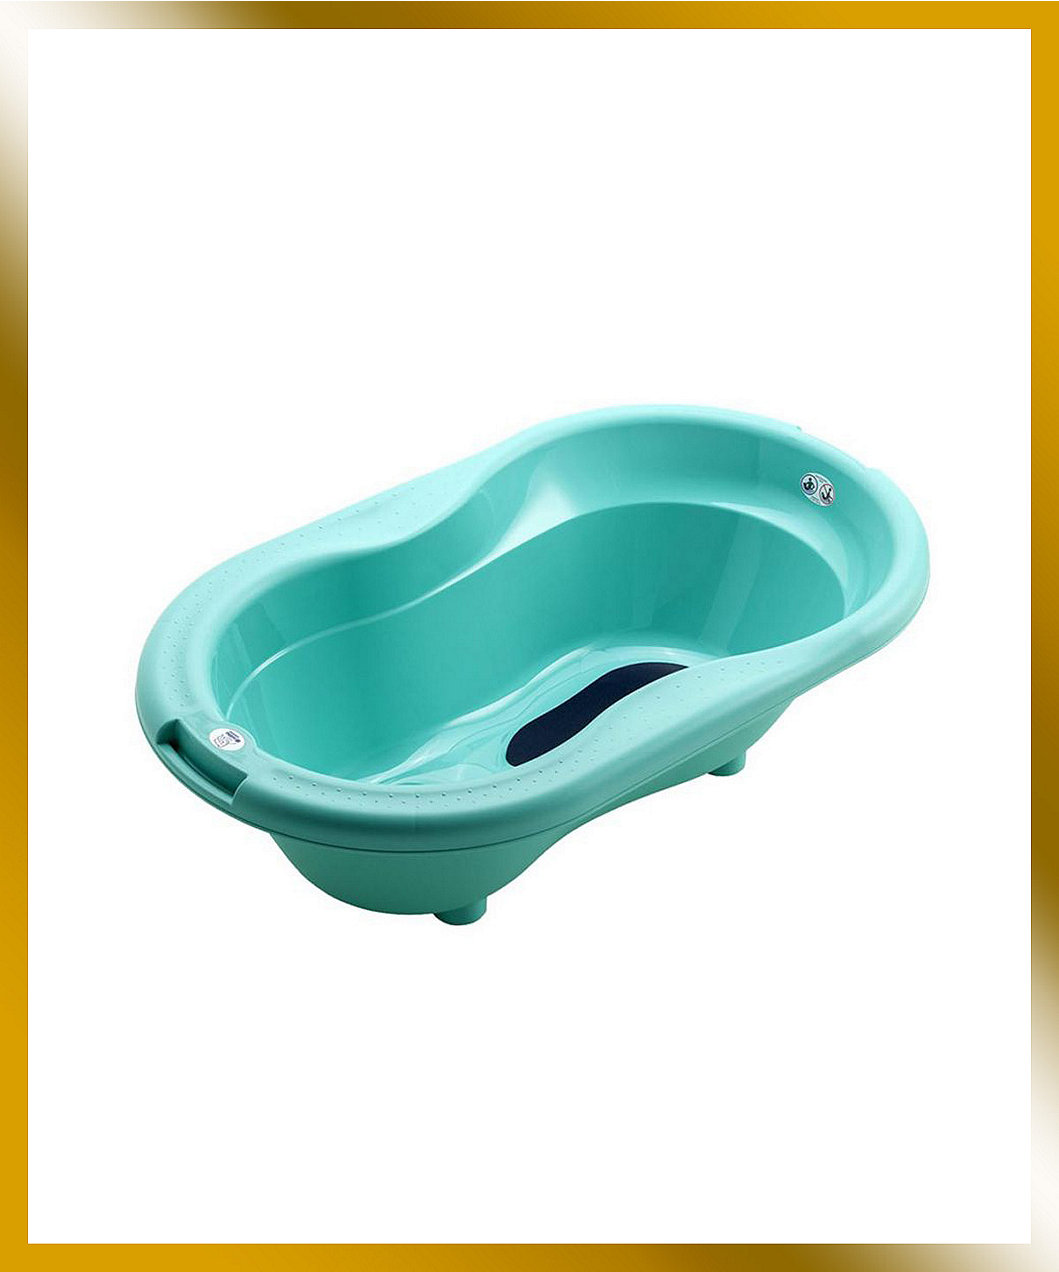 Rotho Bath Tub Curacao Blue | Mothercare Indonesia